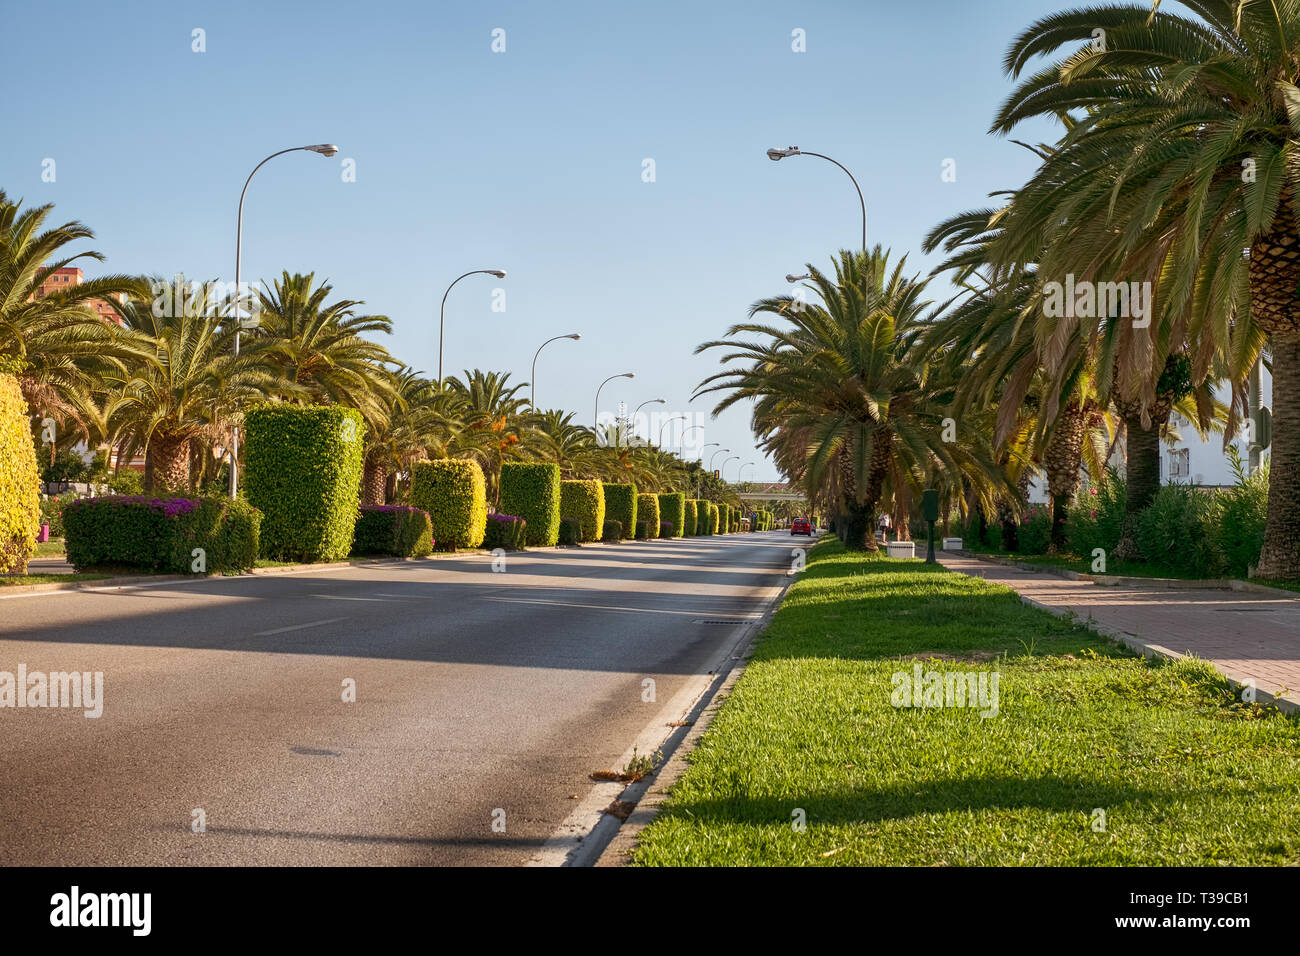 empty Jacinto Benavente street with palms tree and ornamentals plants in Malaga city, Andalucia, Spain - Stock Image